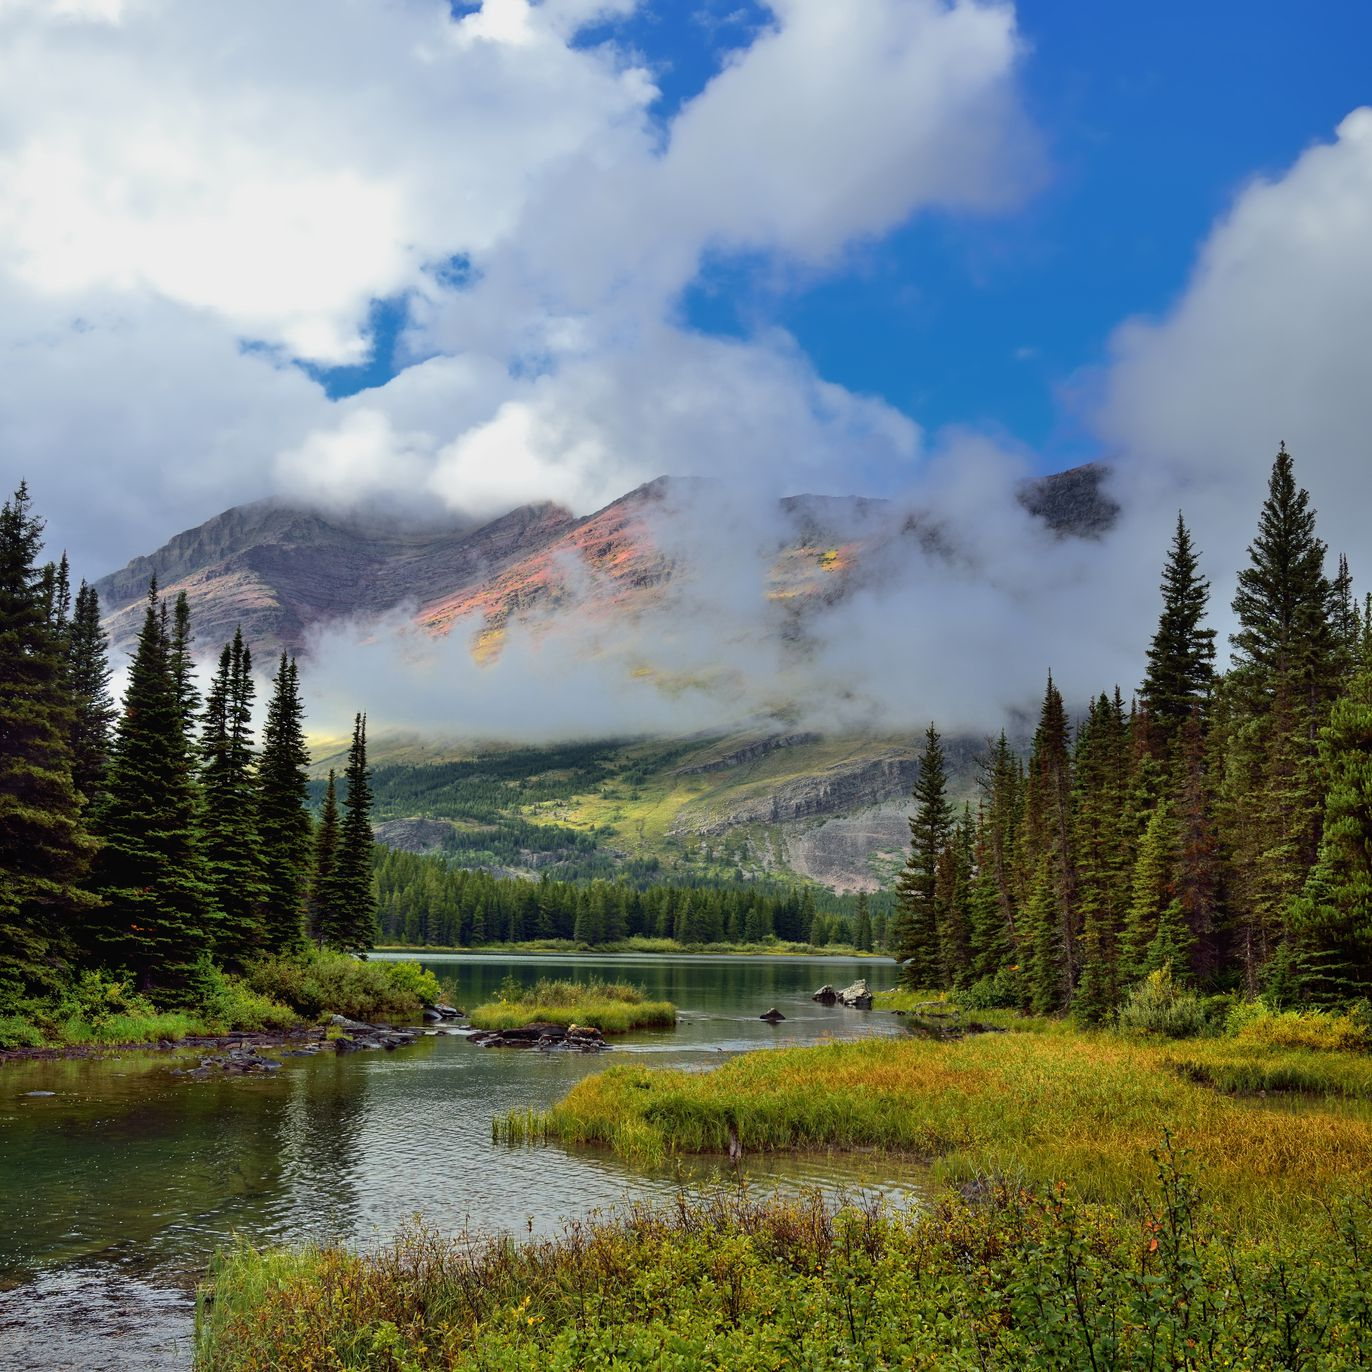 How to Take Amtrak to Glacier National Park